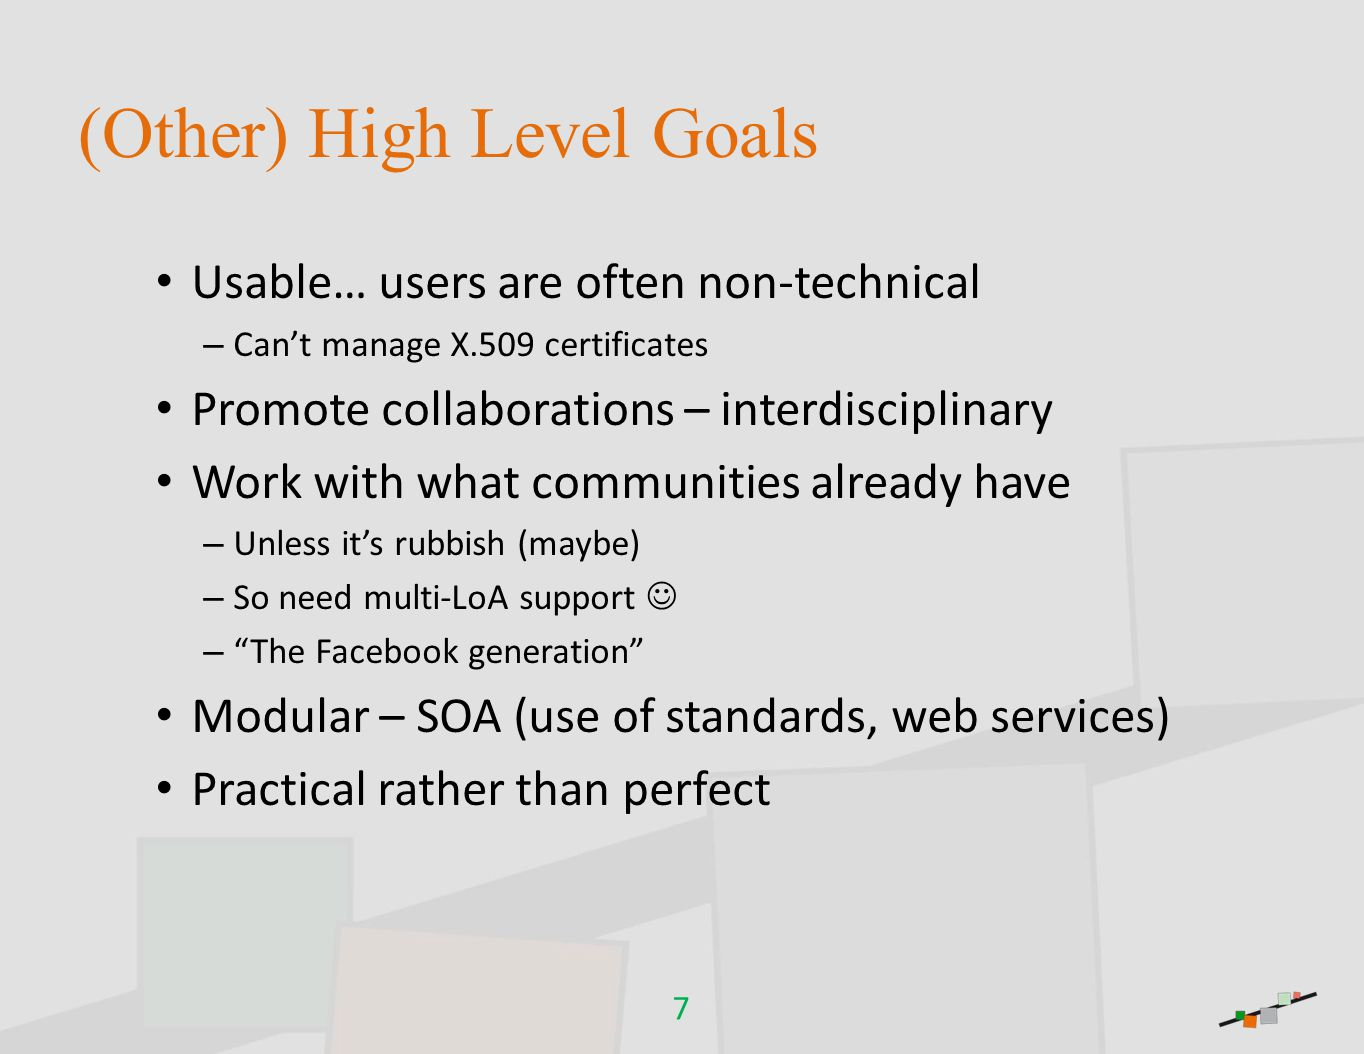 External Requirements Scalable (10**7 users) Easy enough to use for non-technical users Support long tail researchers (aka homeless) Portal and command line login Mature, robust, performant Standards-based Work with existing practices (if pos.) 8